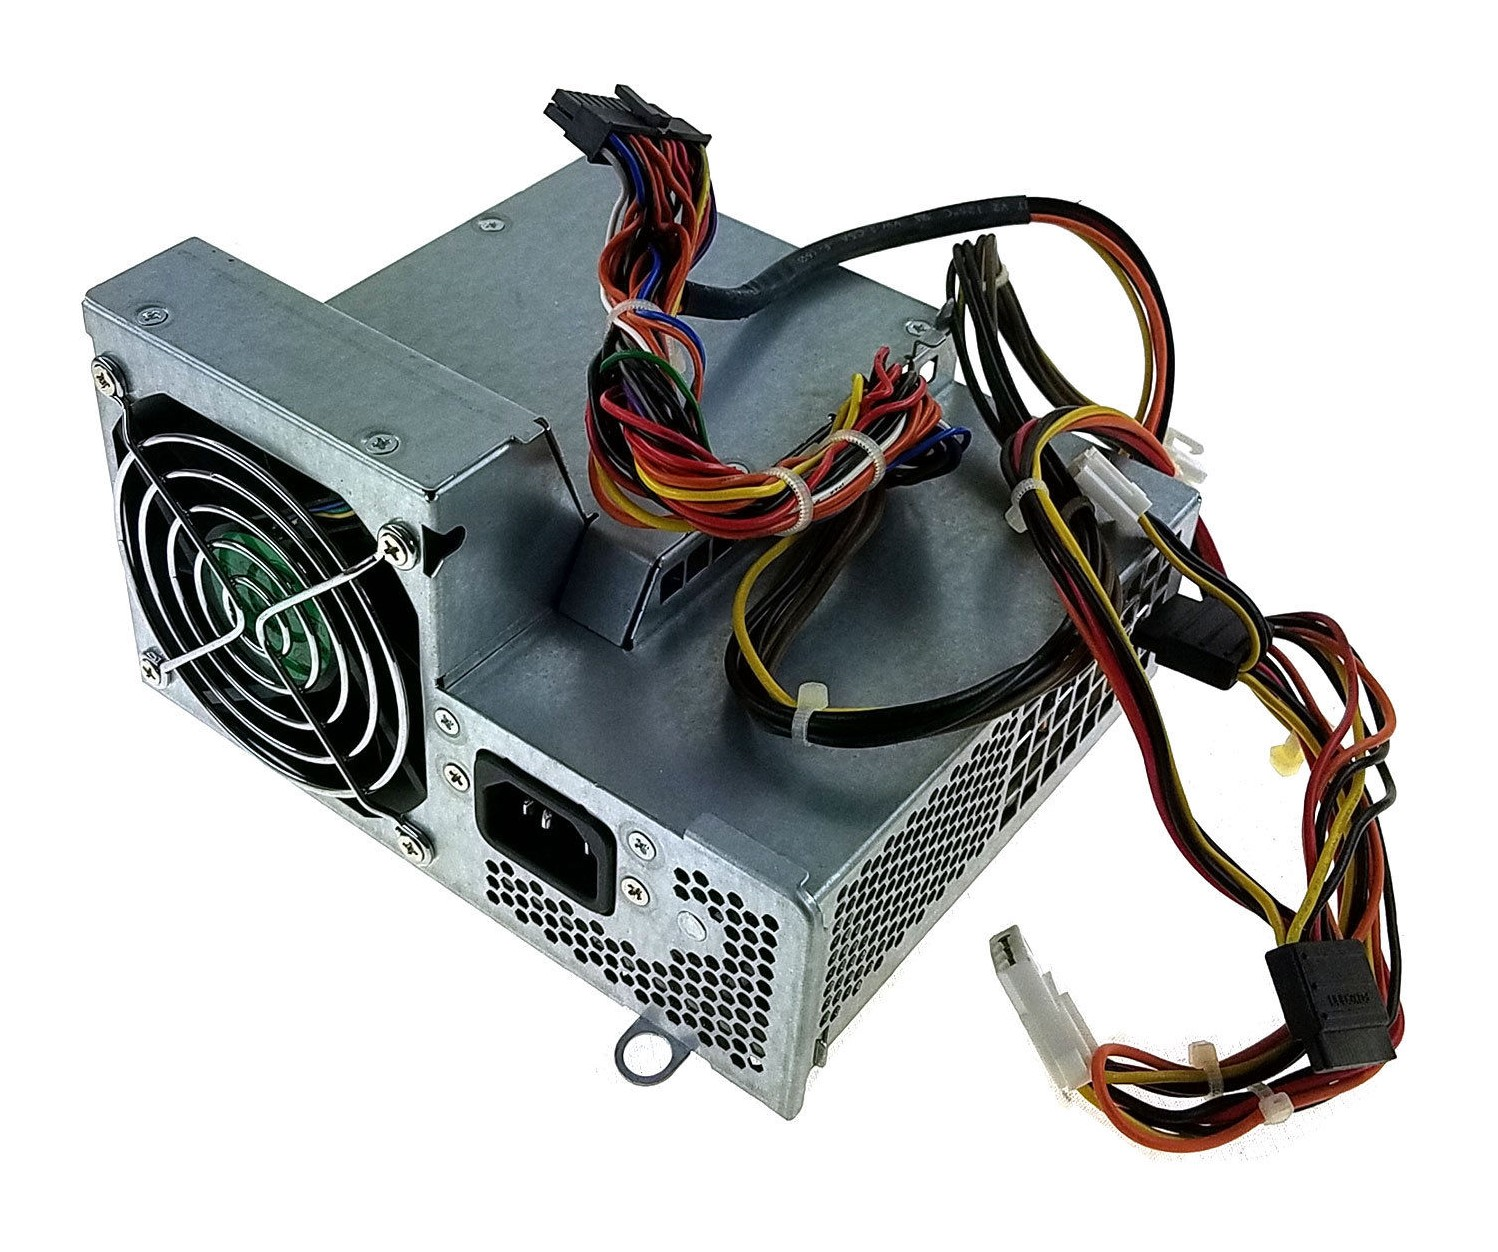 HP Compaq DC7100 DC7600 DC7700 SFF 240W Power Supply PSU 403778-001